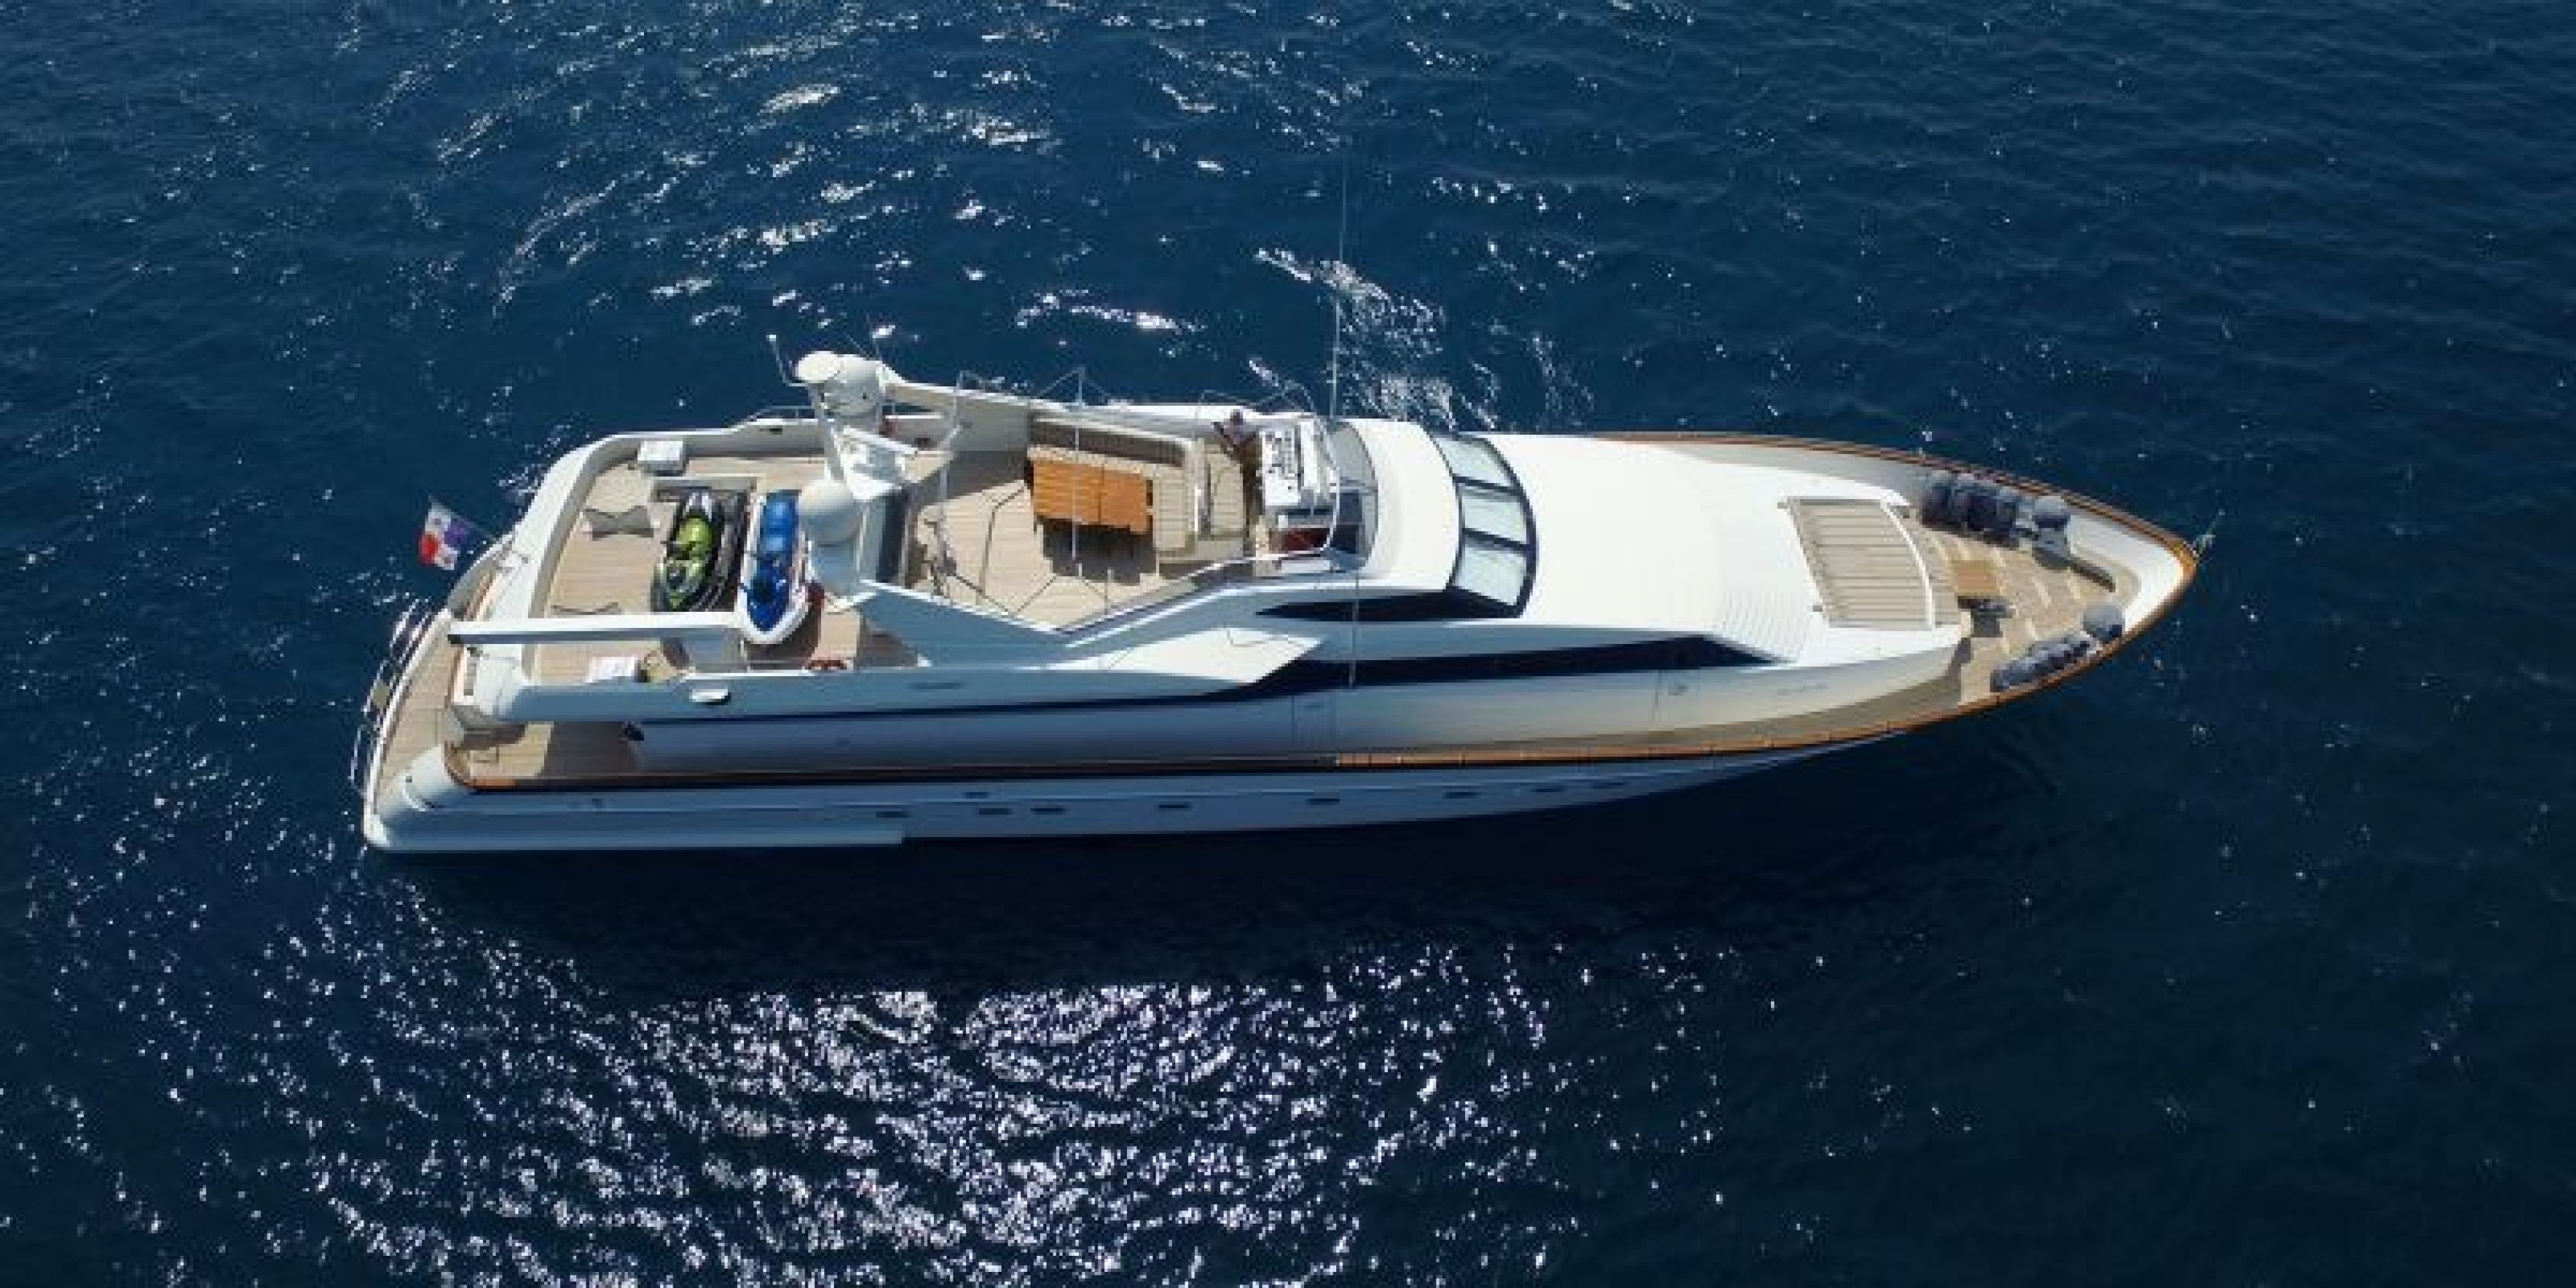 CUTLASS PEARL YACHT FOR SALE (32.5M)